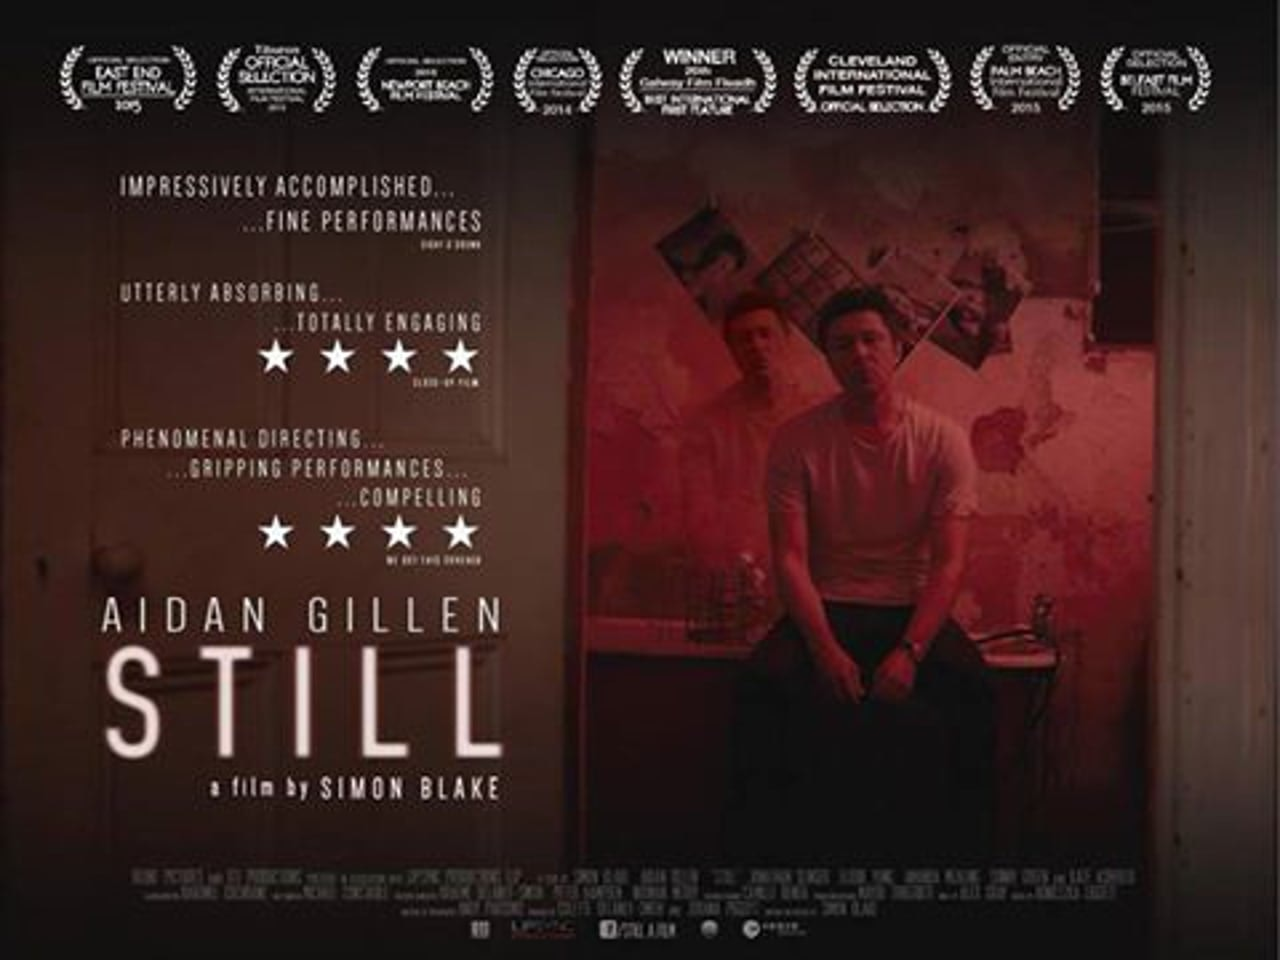 STILL - movie trailer